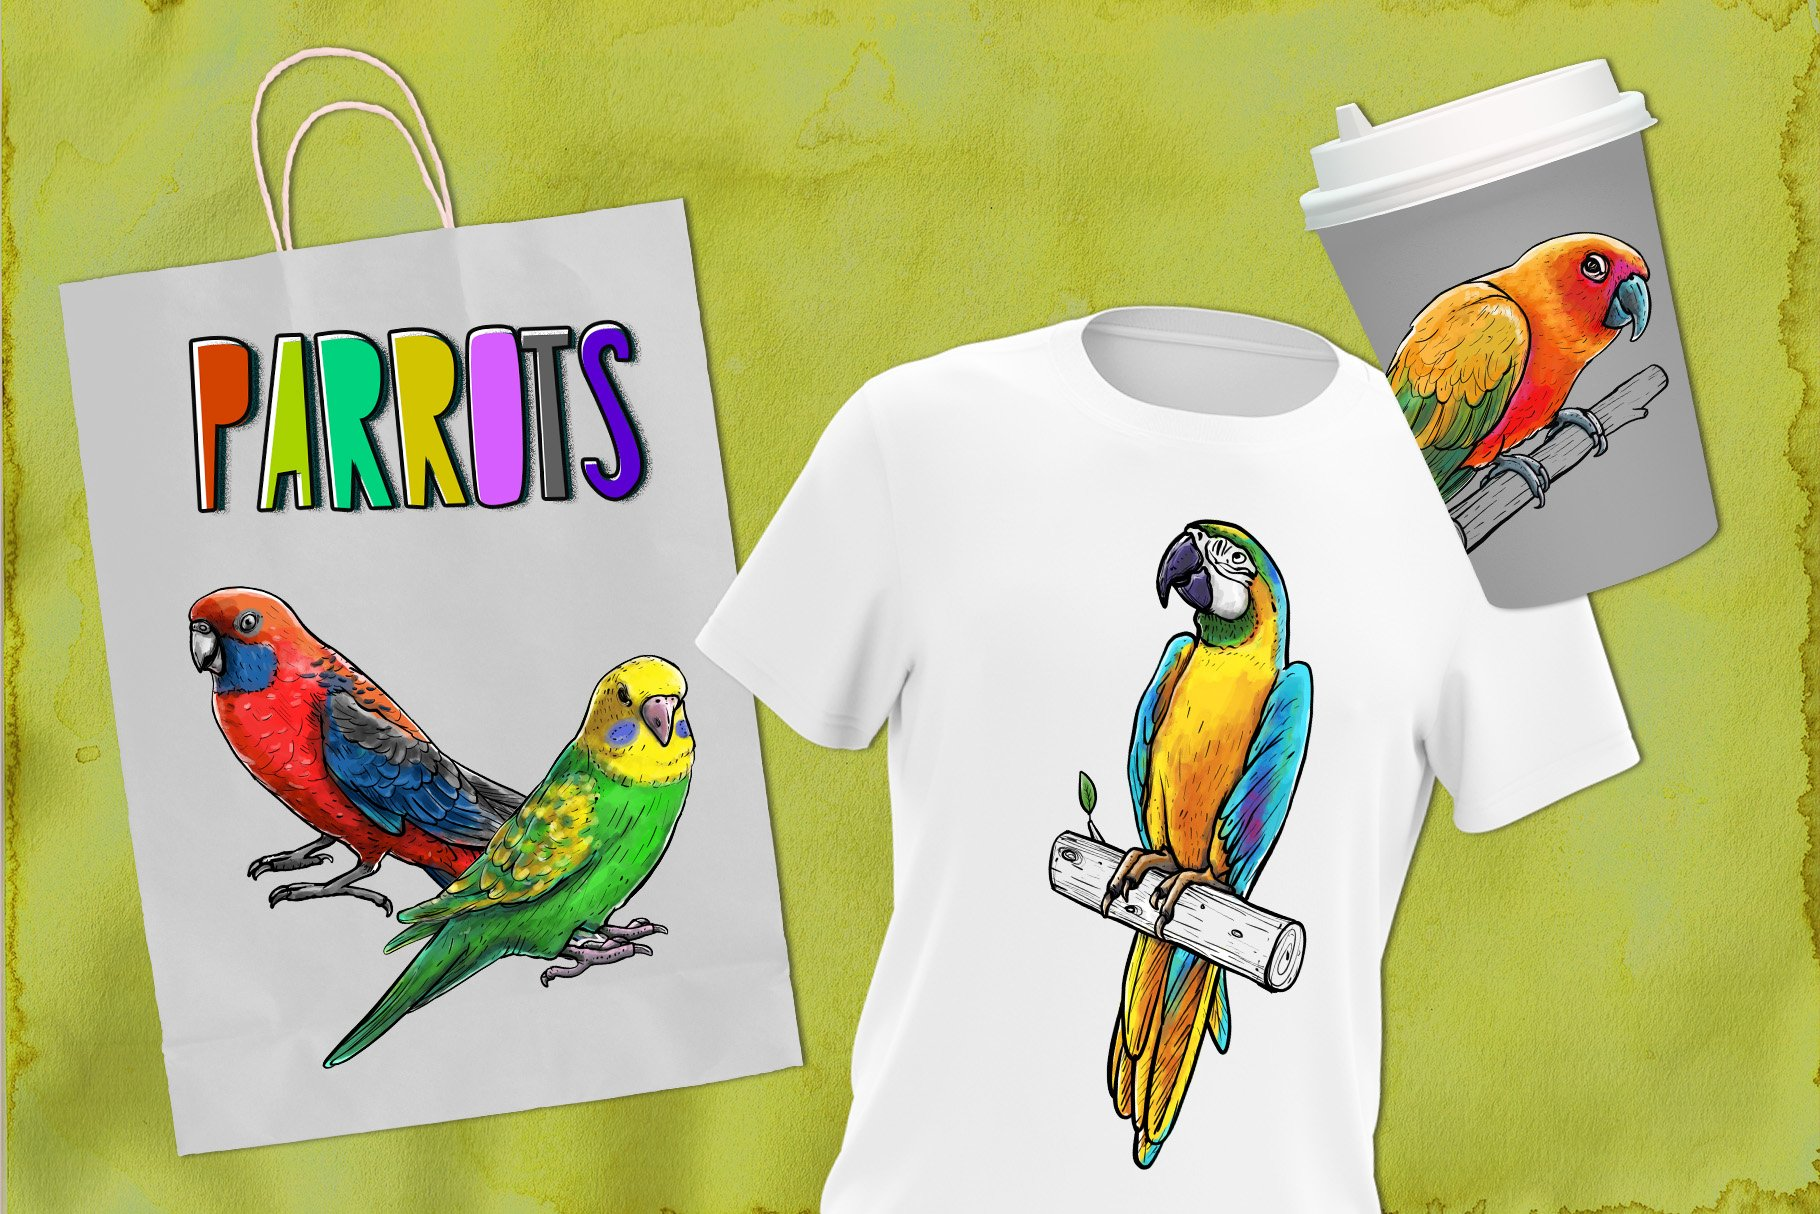 Drawn parrots example image 3